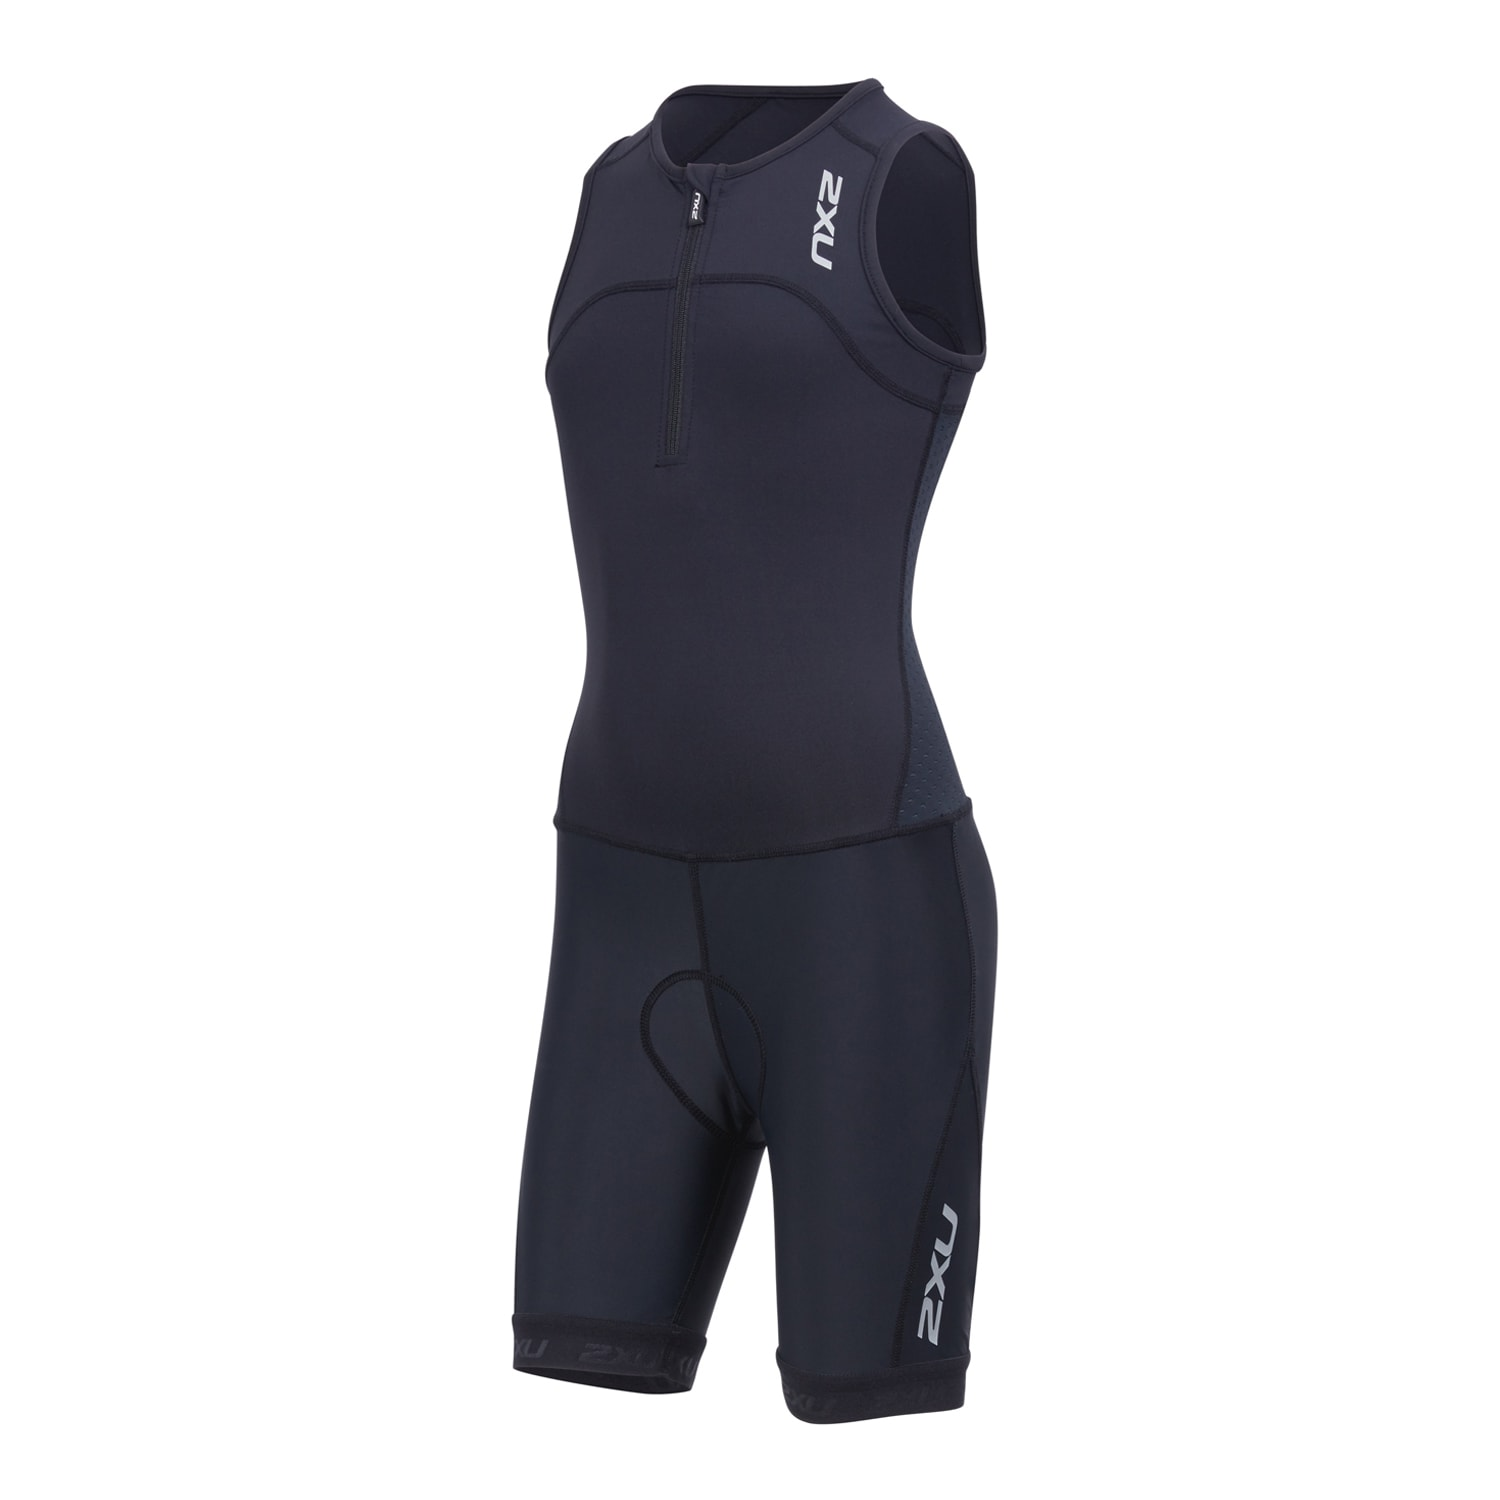 Active Kinder Triathlon Einteiler Unisex - 2XU